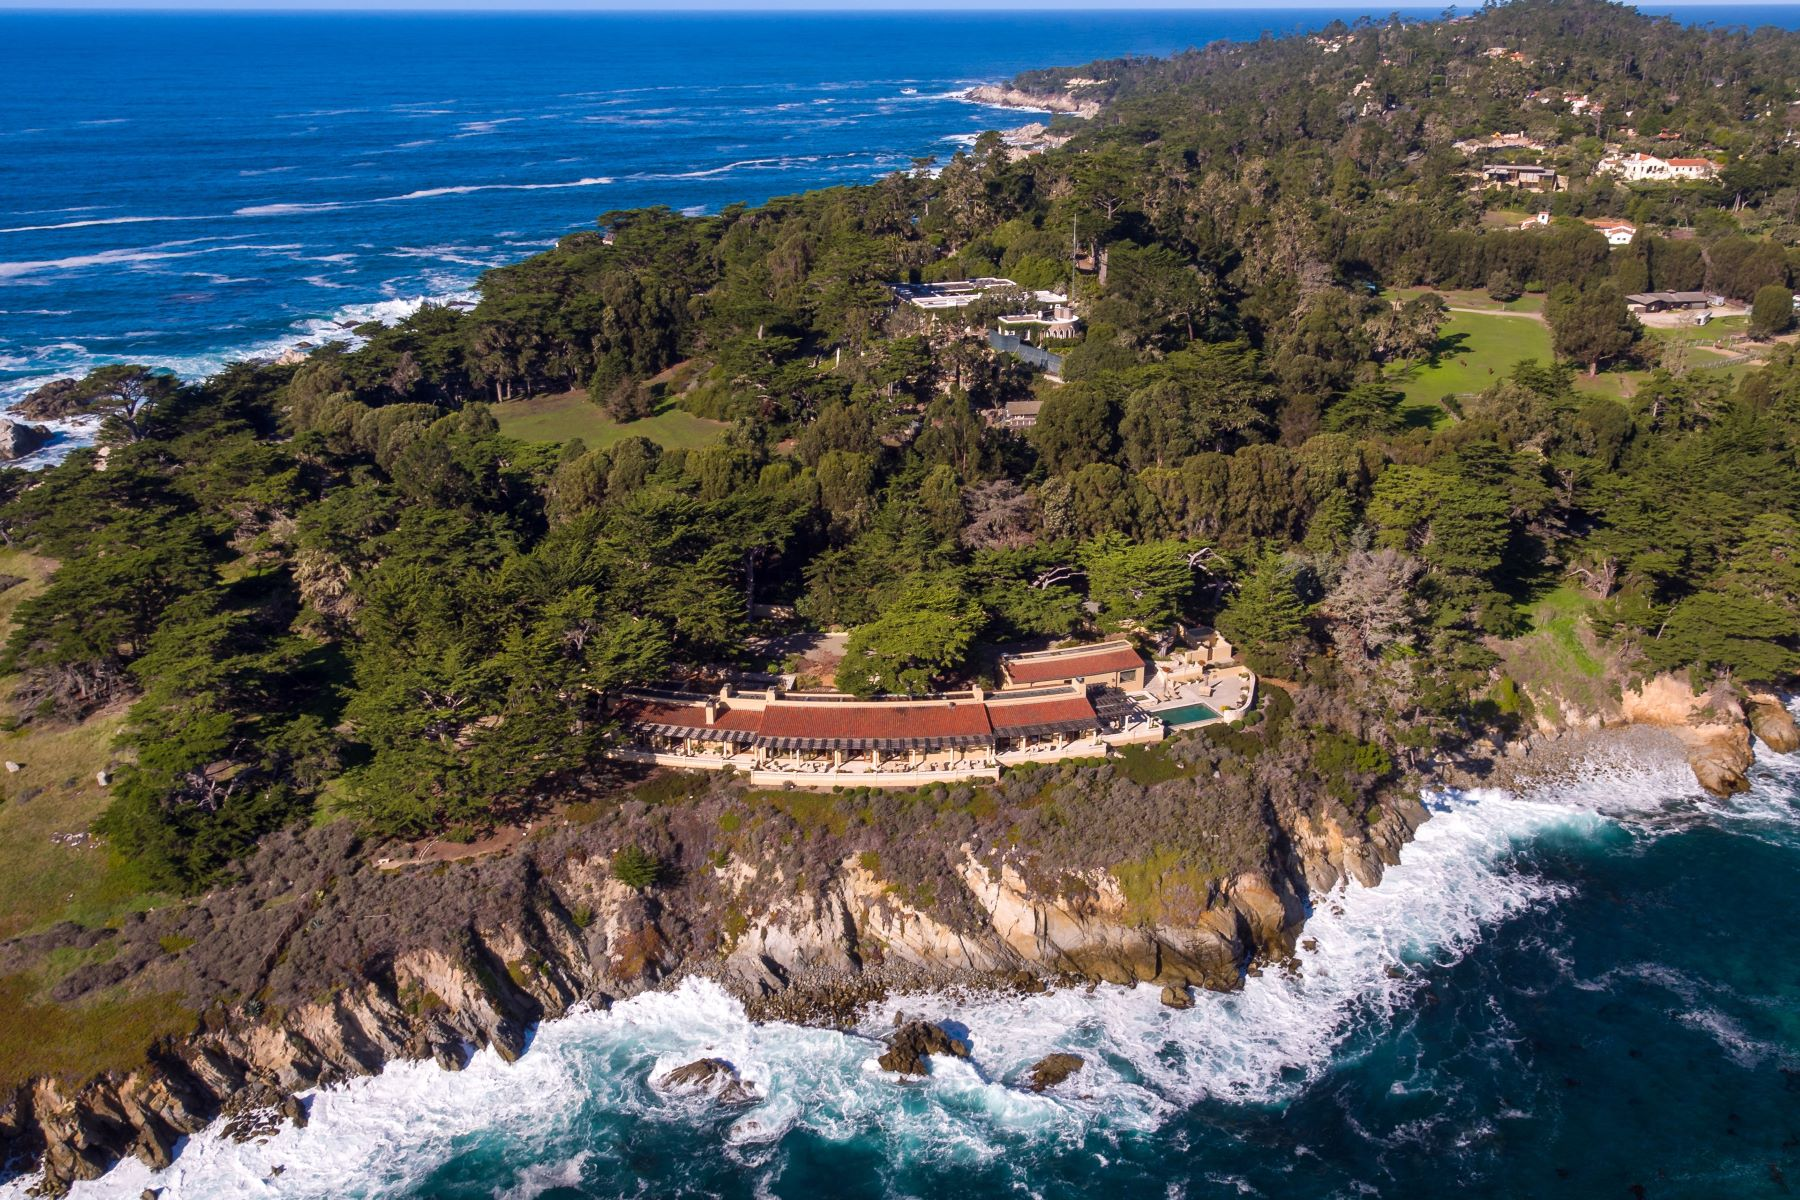 Single Family Home for Sale at 3290 17 Mile Drive Pebble Beach, California, 93953 United States